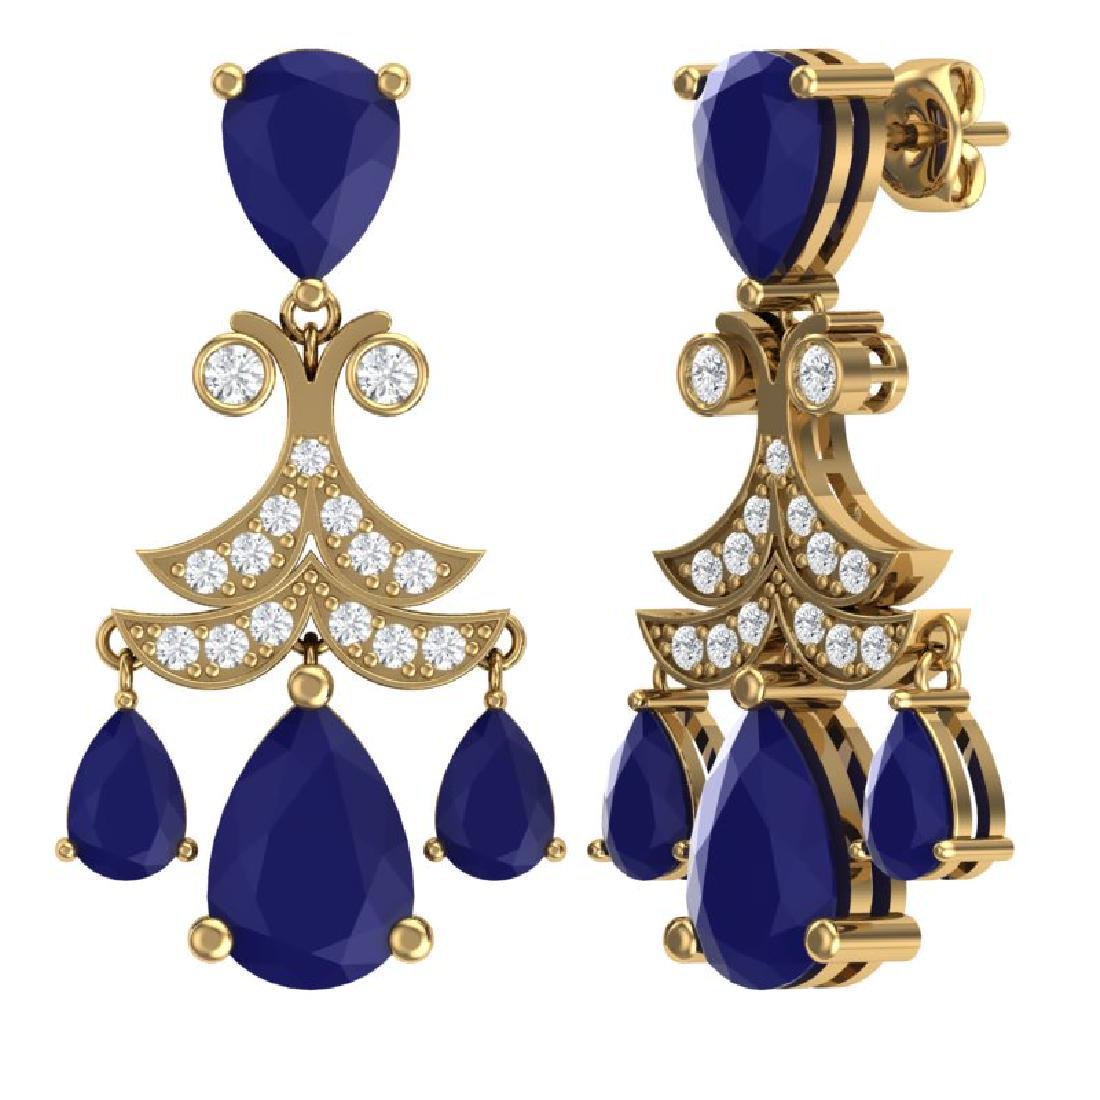 11.97 CTW Royalty Sapphire & VS Diamond Earrings 18K - 3